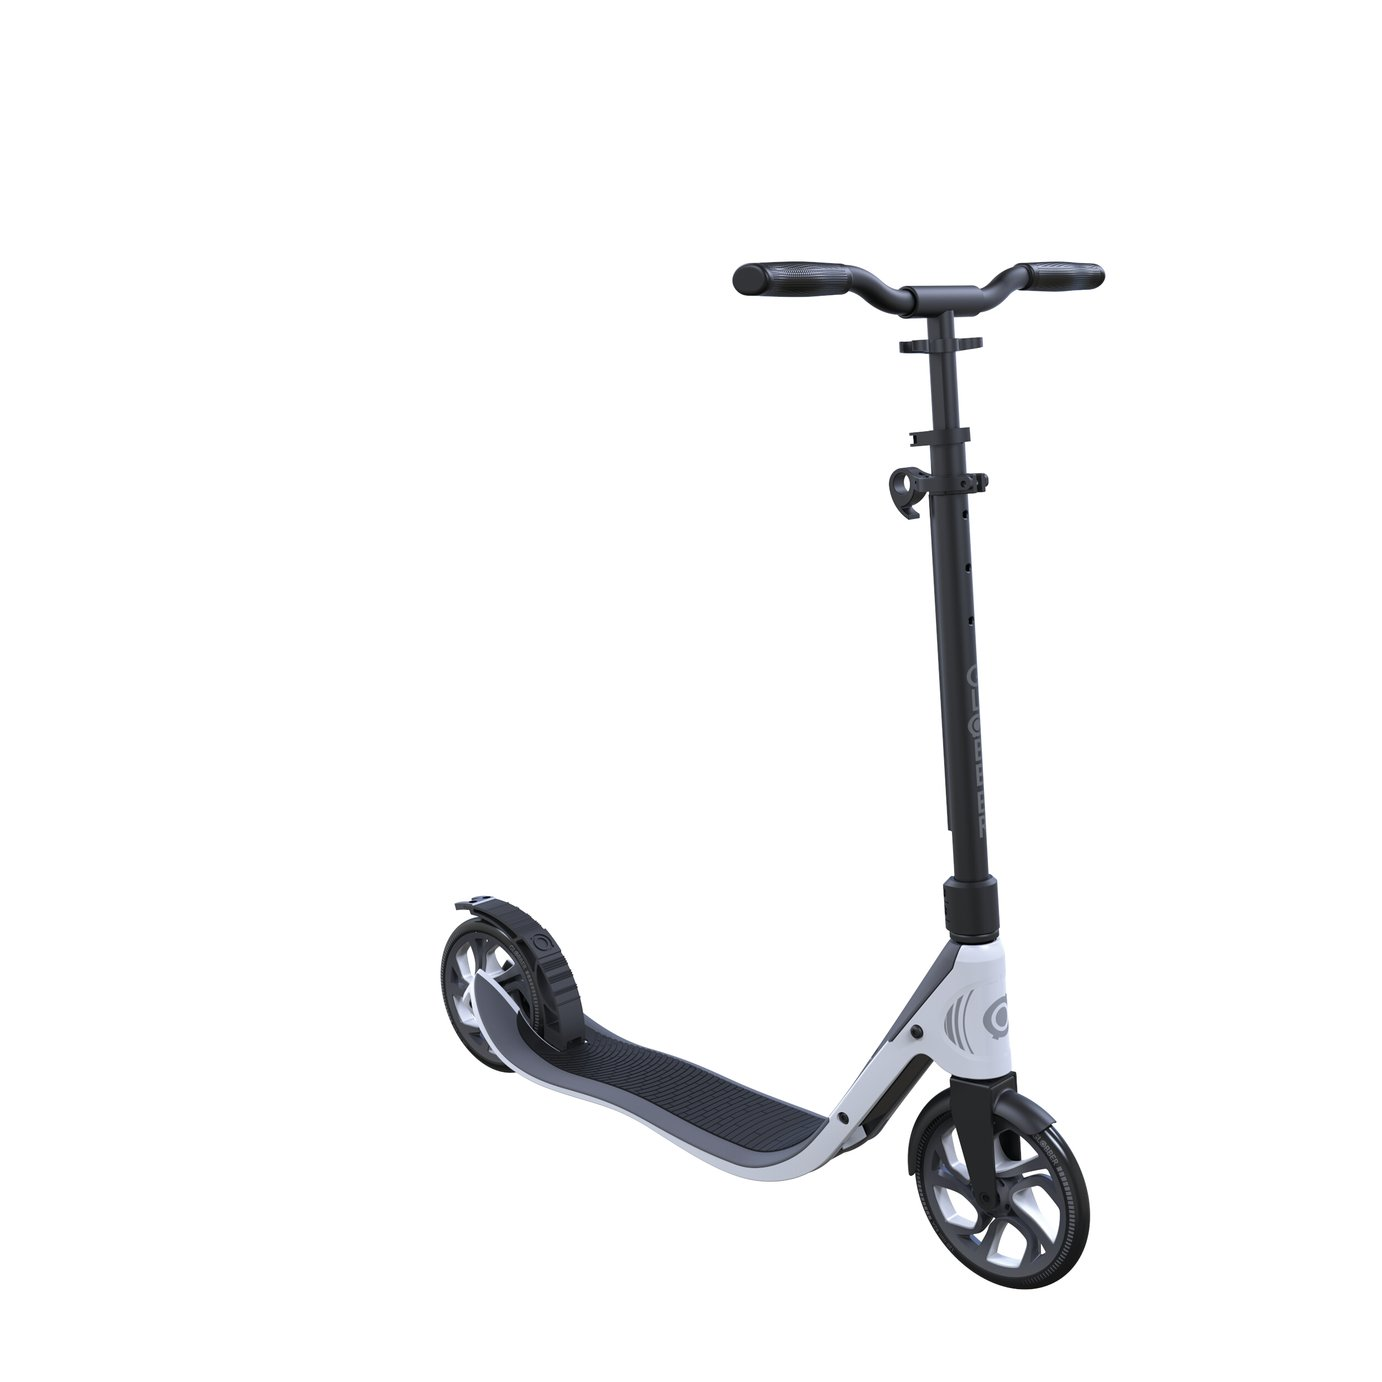 Globber One NL 205 Folding Scooter - Black and White